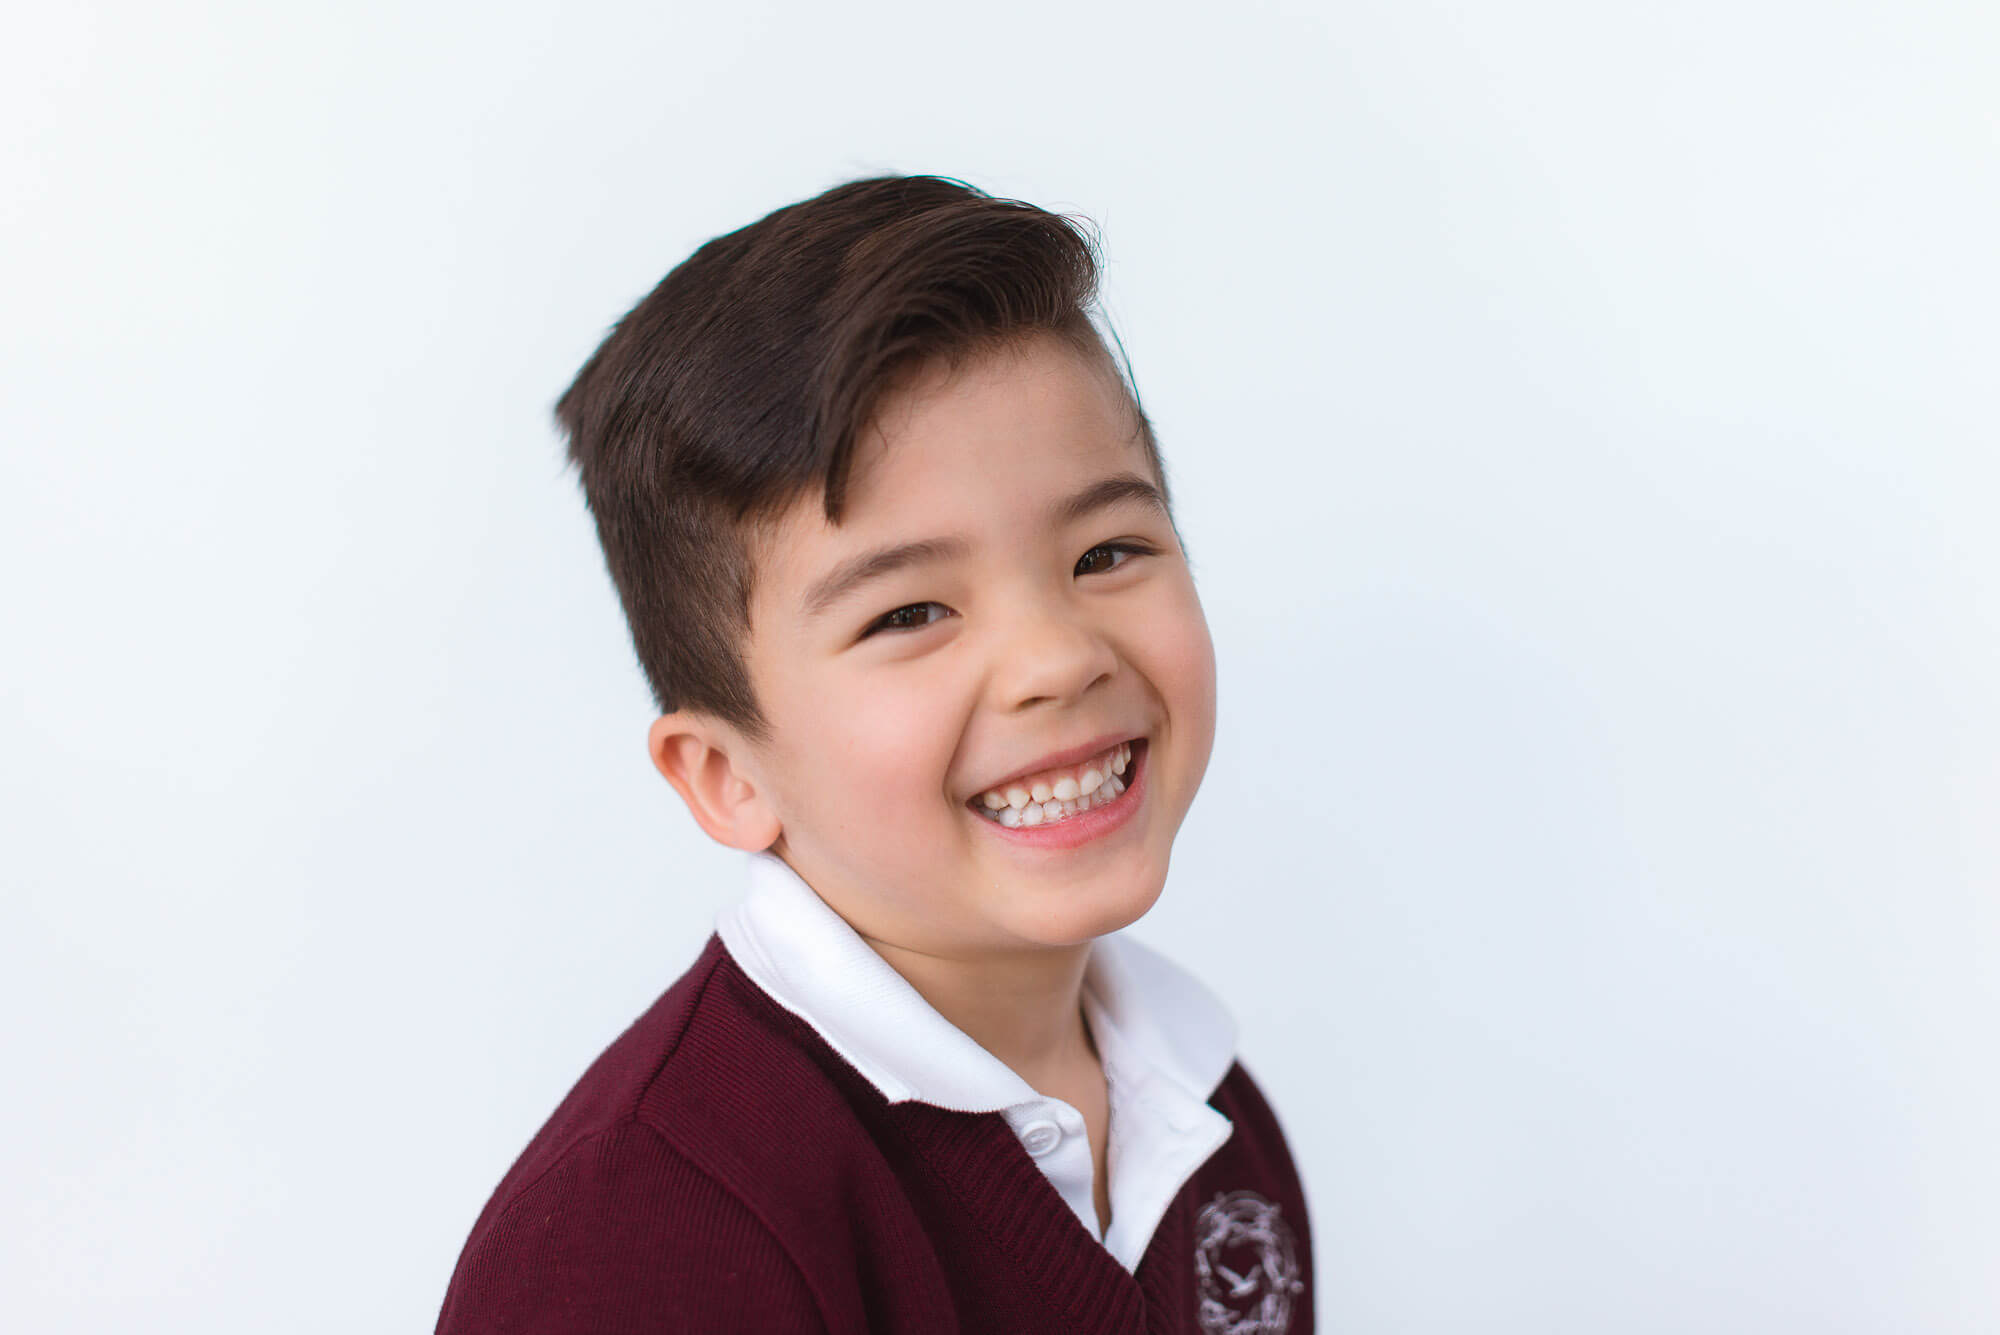 boutique school photography smiling boy